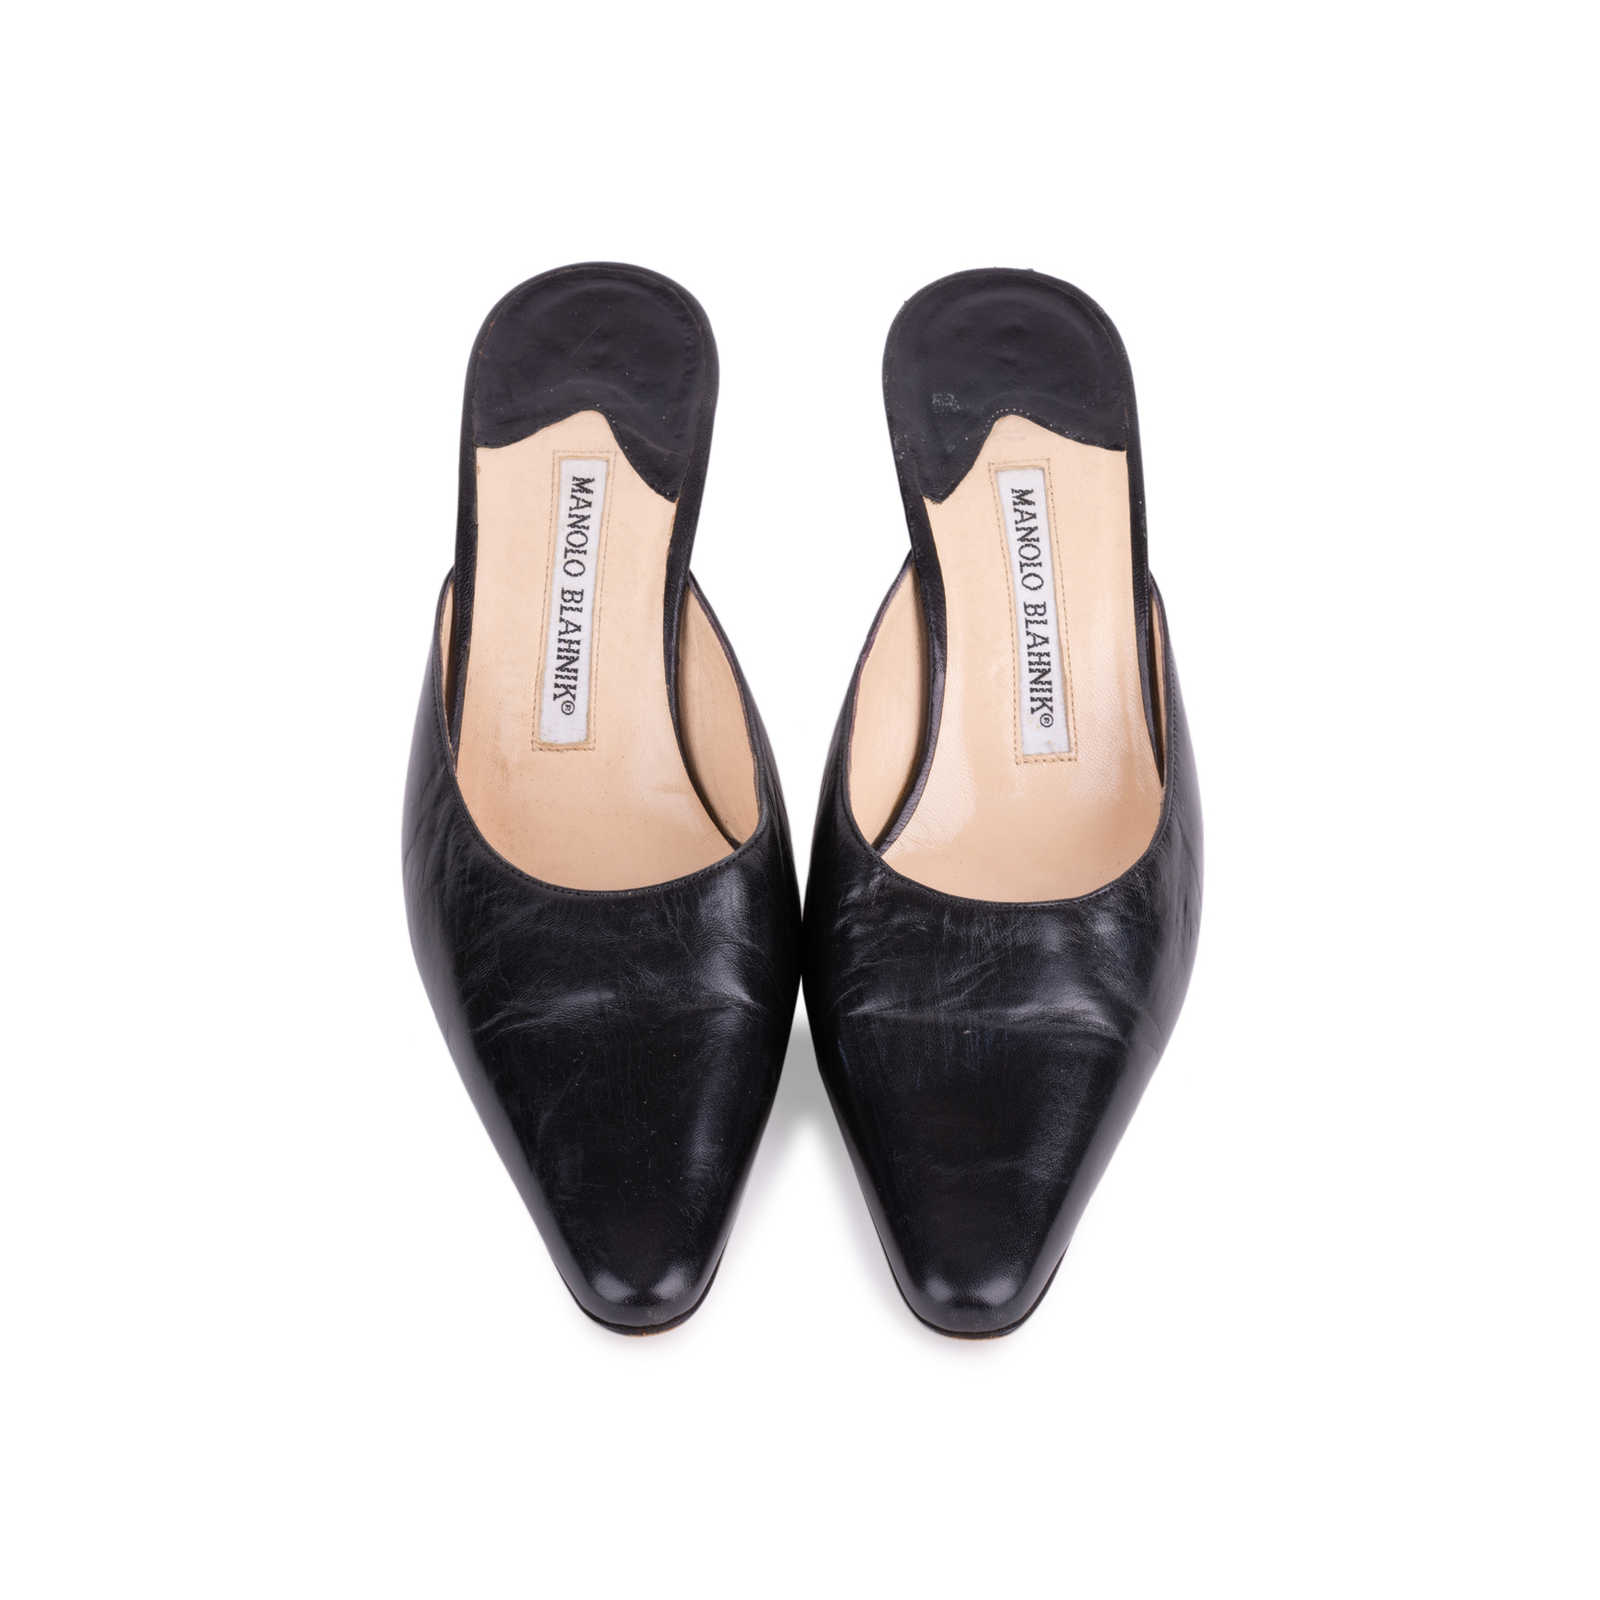 86944b12db8c8 Authentic Second Hand Manolo Blahnik Pointed Leather Mules (PSS-642-00001)  ...